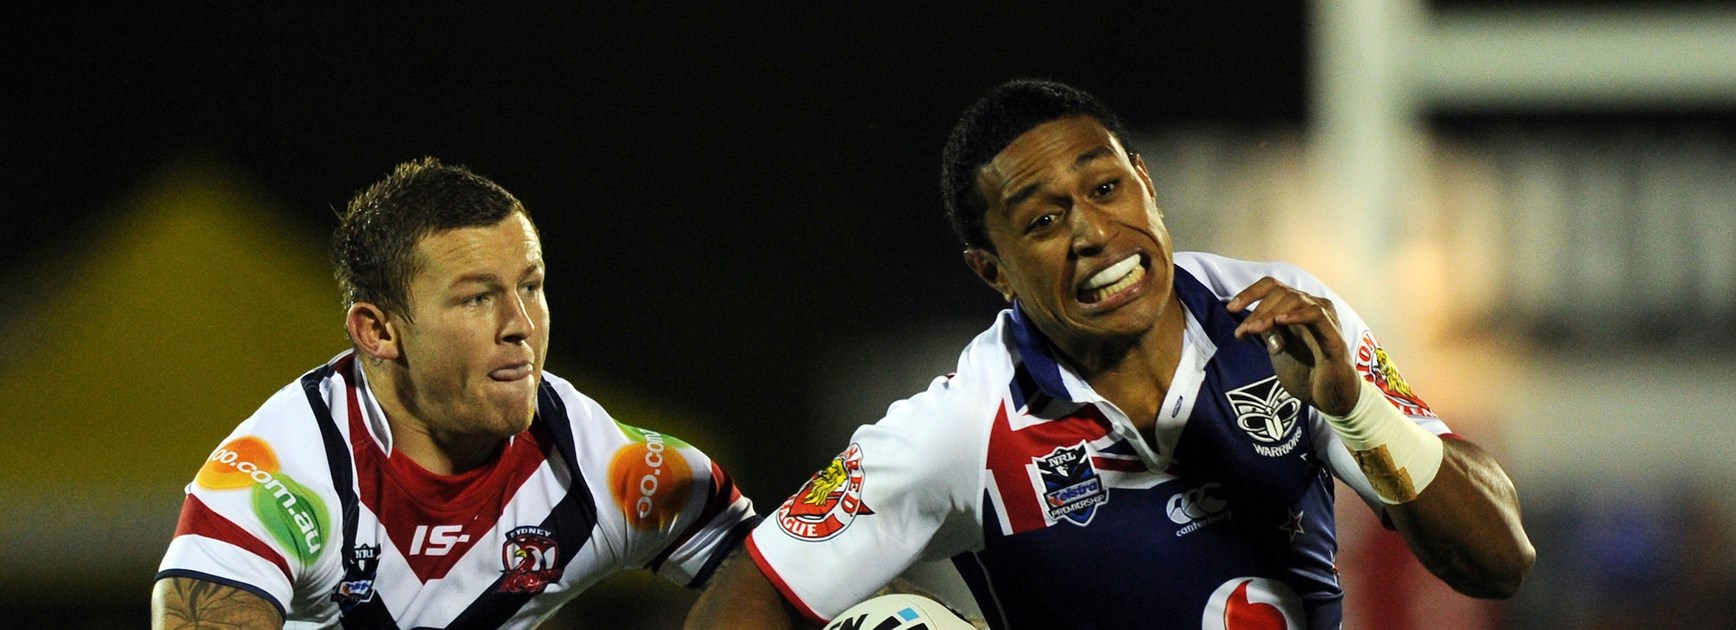 Vodafone Warriors grind down Roosters